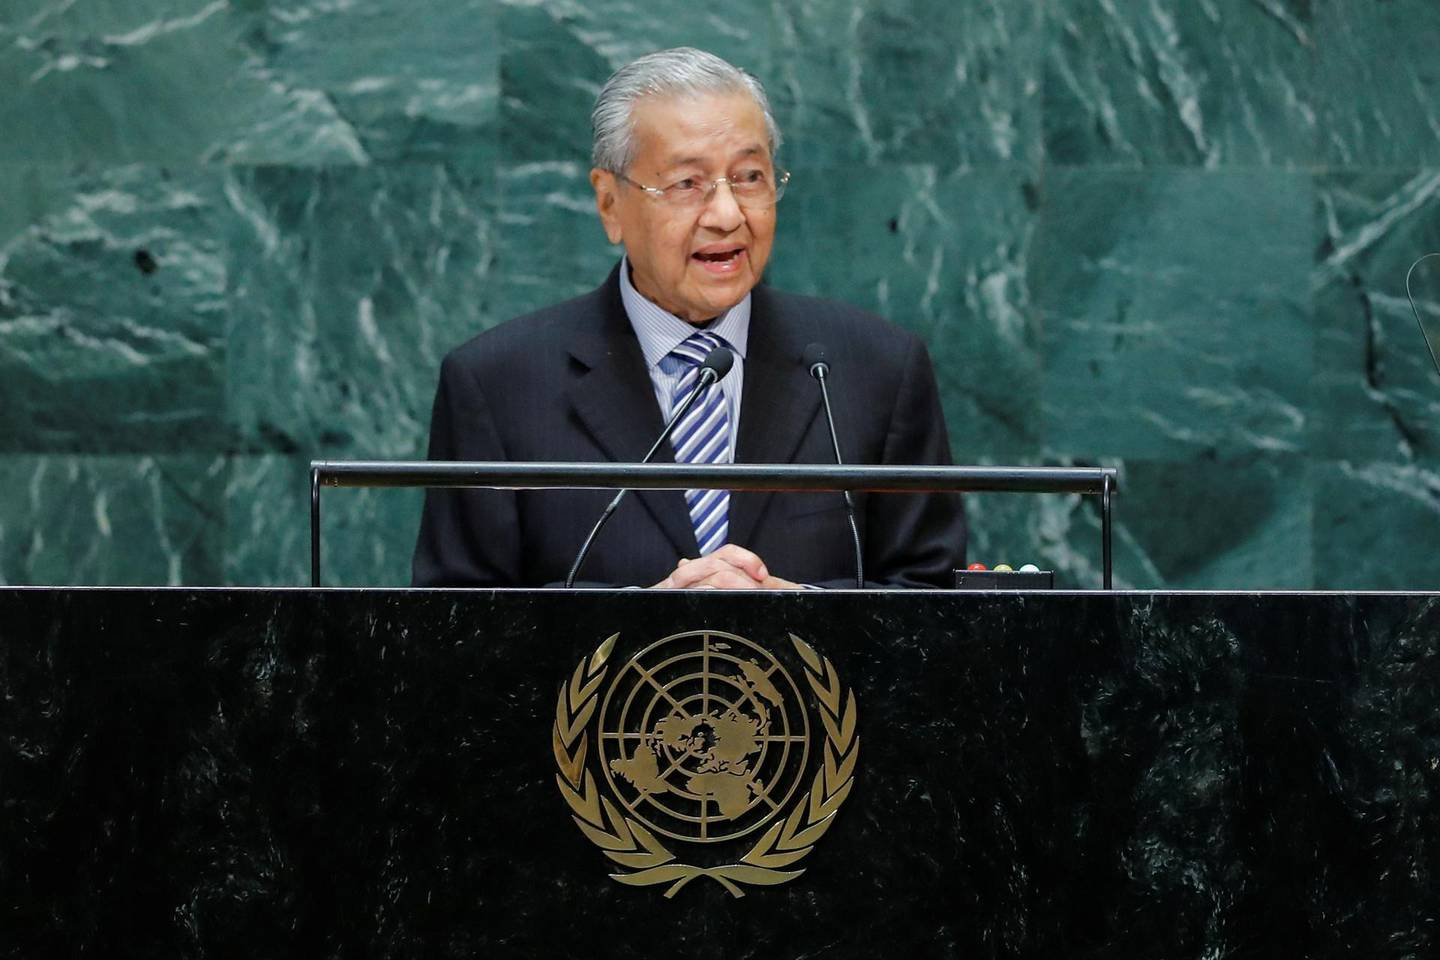 Malaysian Prime Minister Mahathir Mohamad addresses the 74th session of the United Nations General Assembly at U.N. headquarters in New York City, New York, U.S., September 27, 2019. REUTERS/Eduardo Munoz